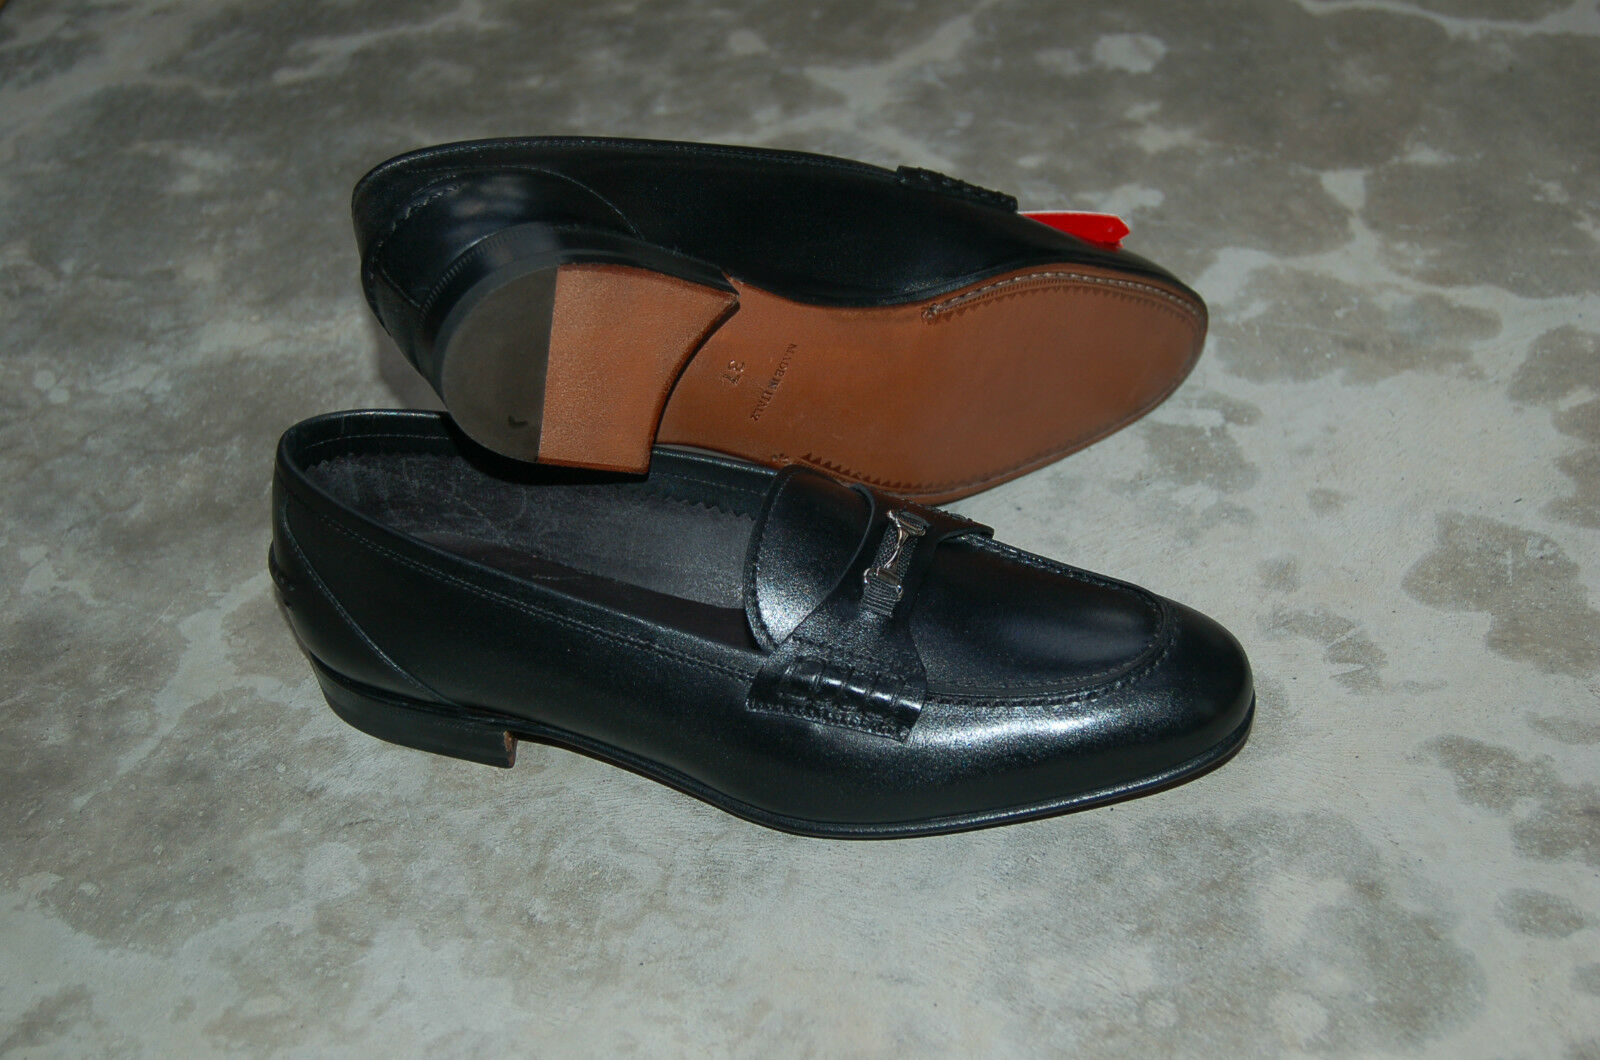 WOMAN - 37 - PENNY LOAFER - SOFTY CALF NERO - LEATHER SOLE